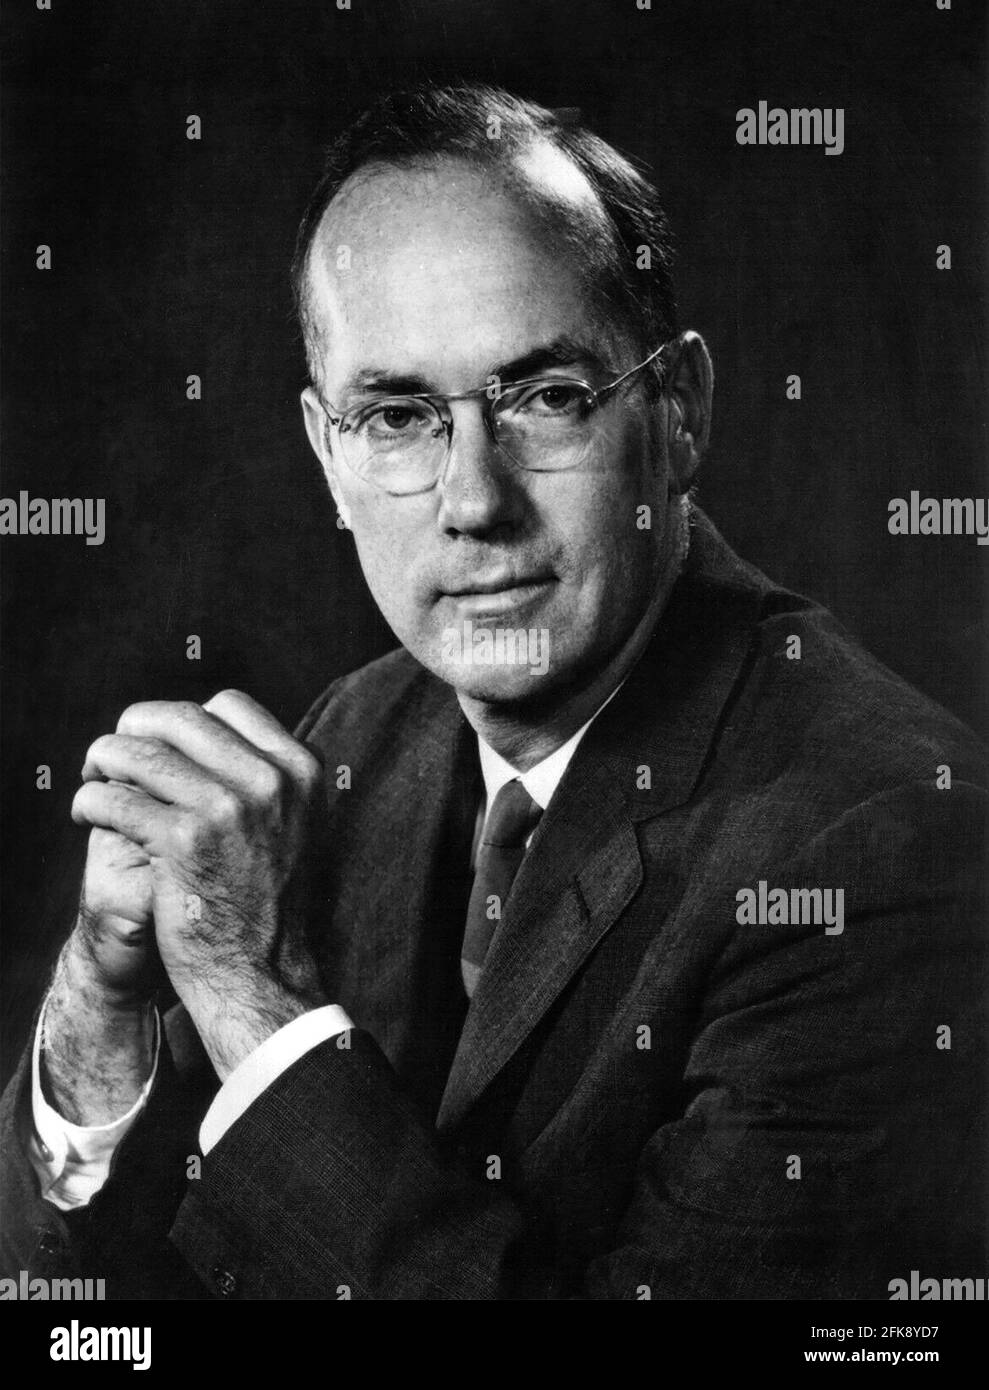 Charles Townes. Porträt des amerikanischen Physikers Charles Hard Townes (1915-2015) Stockfoto